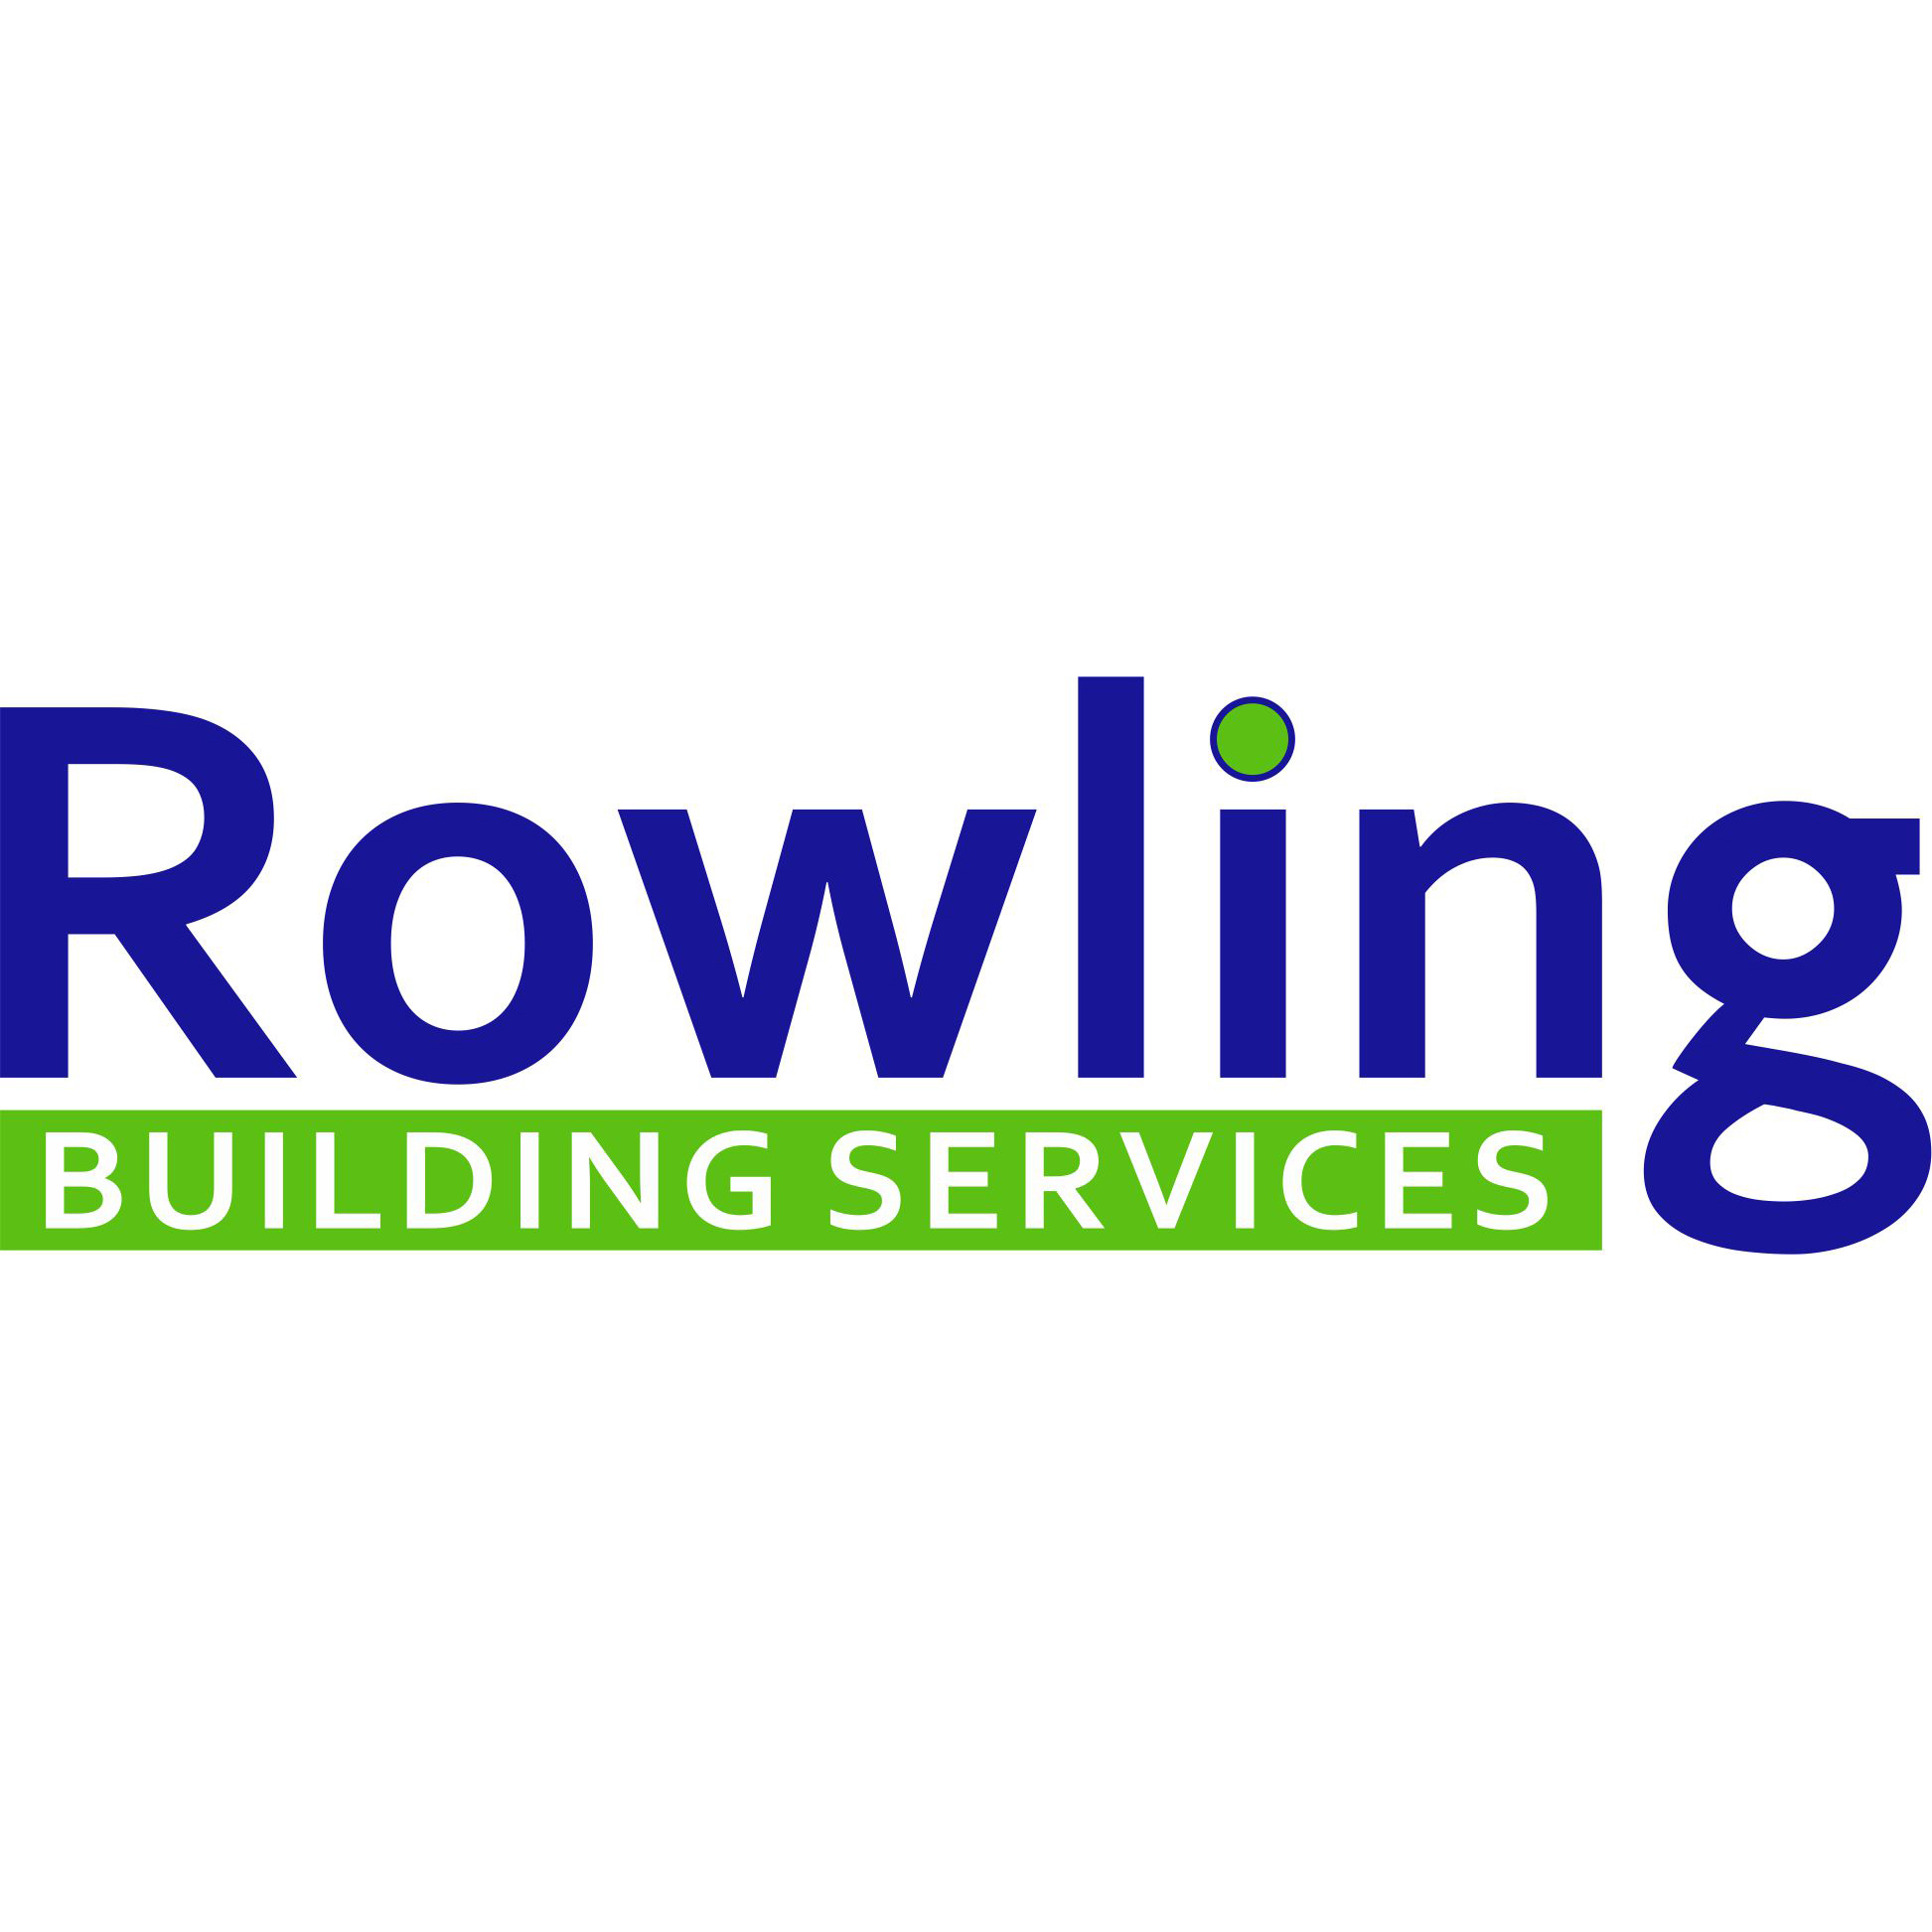 Rowling Building Services Ltd